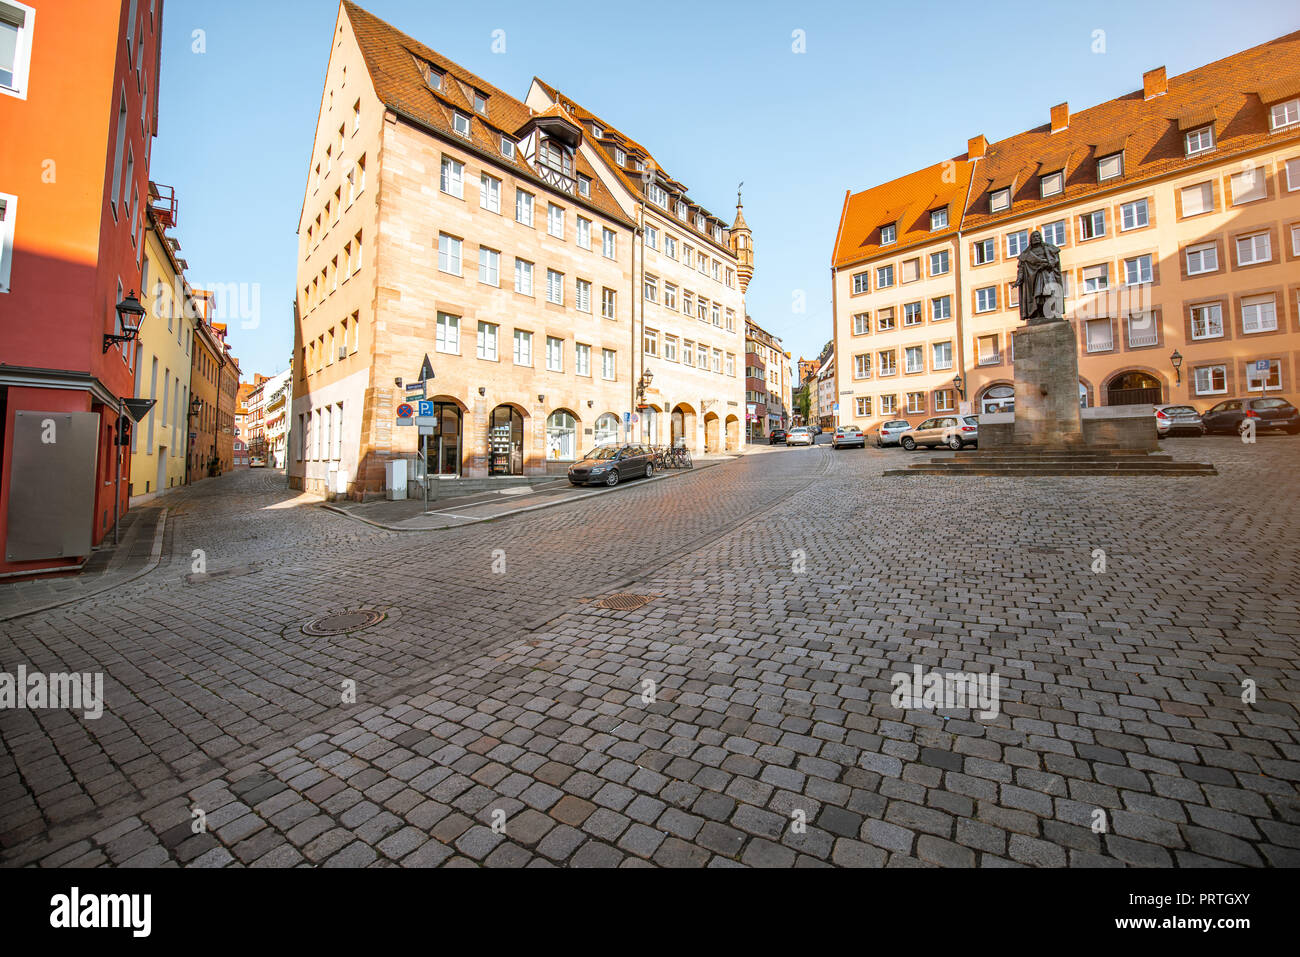 View on the central square with Albrecht Durer monument in the old town of Nurnberg, Germany - Stock Image